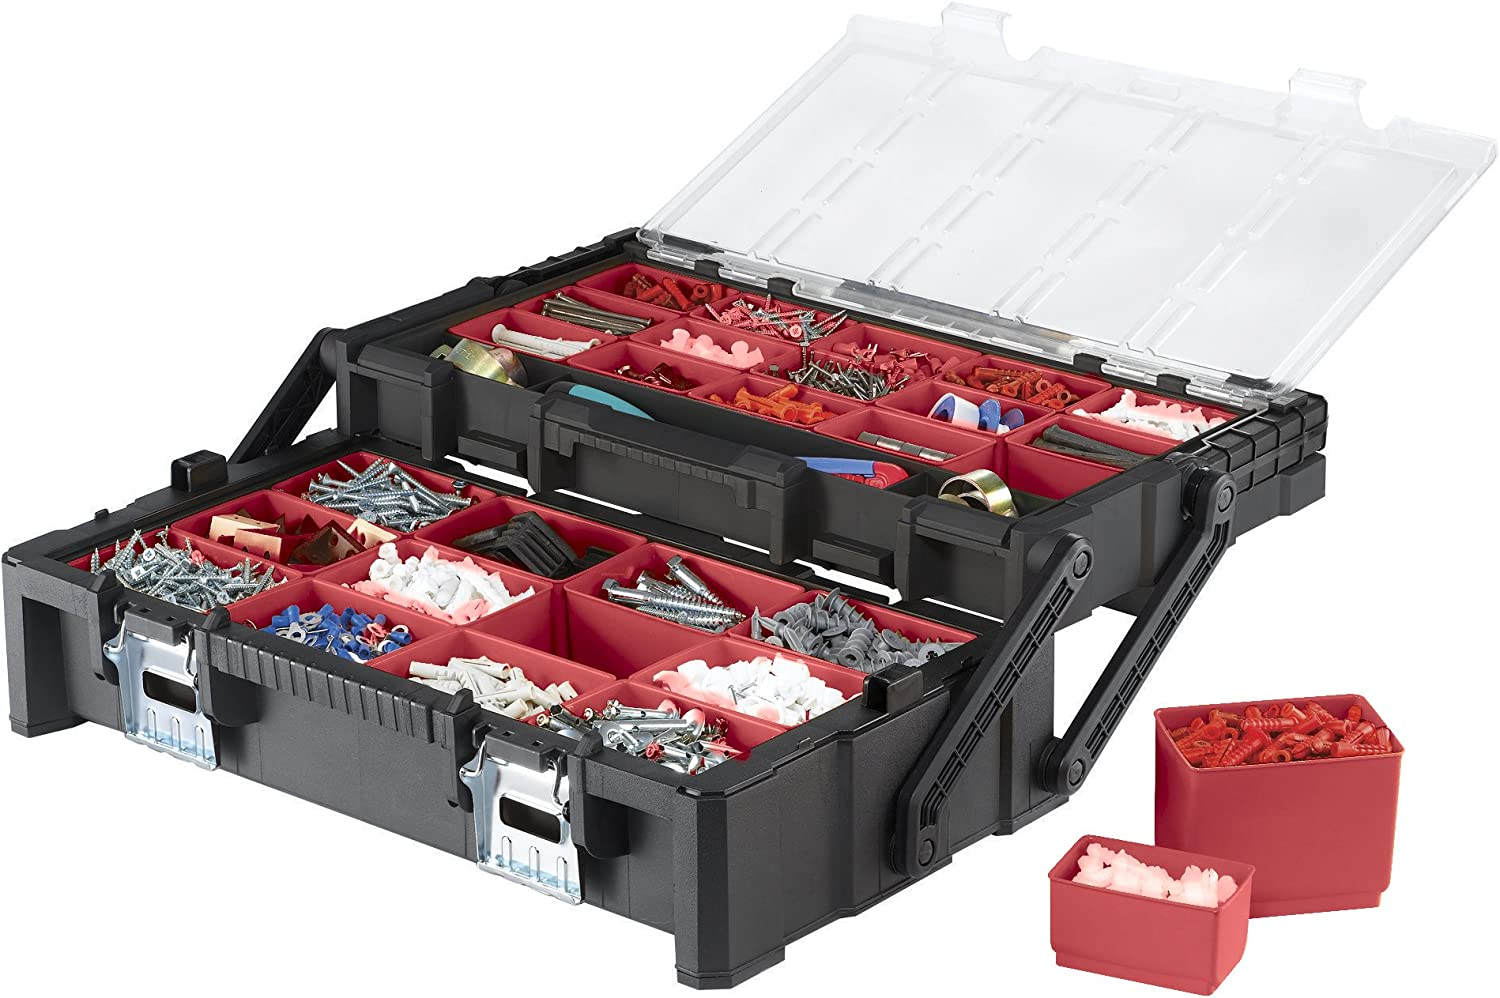 Keter 22 Inch Resin Cantilever Portable Tool Box Organizer with 27 Removable Compartments for Hardware Storage, and Nut and Bolt Organization 81LMg1GVtZLSL1500_